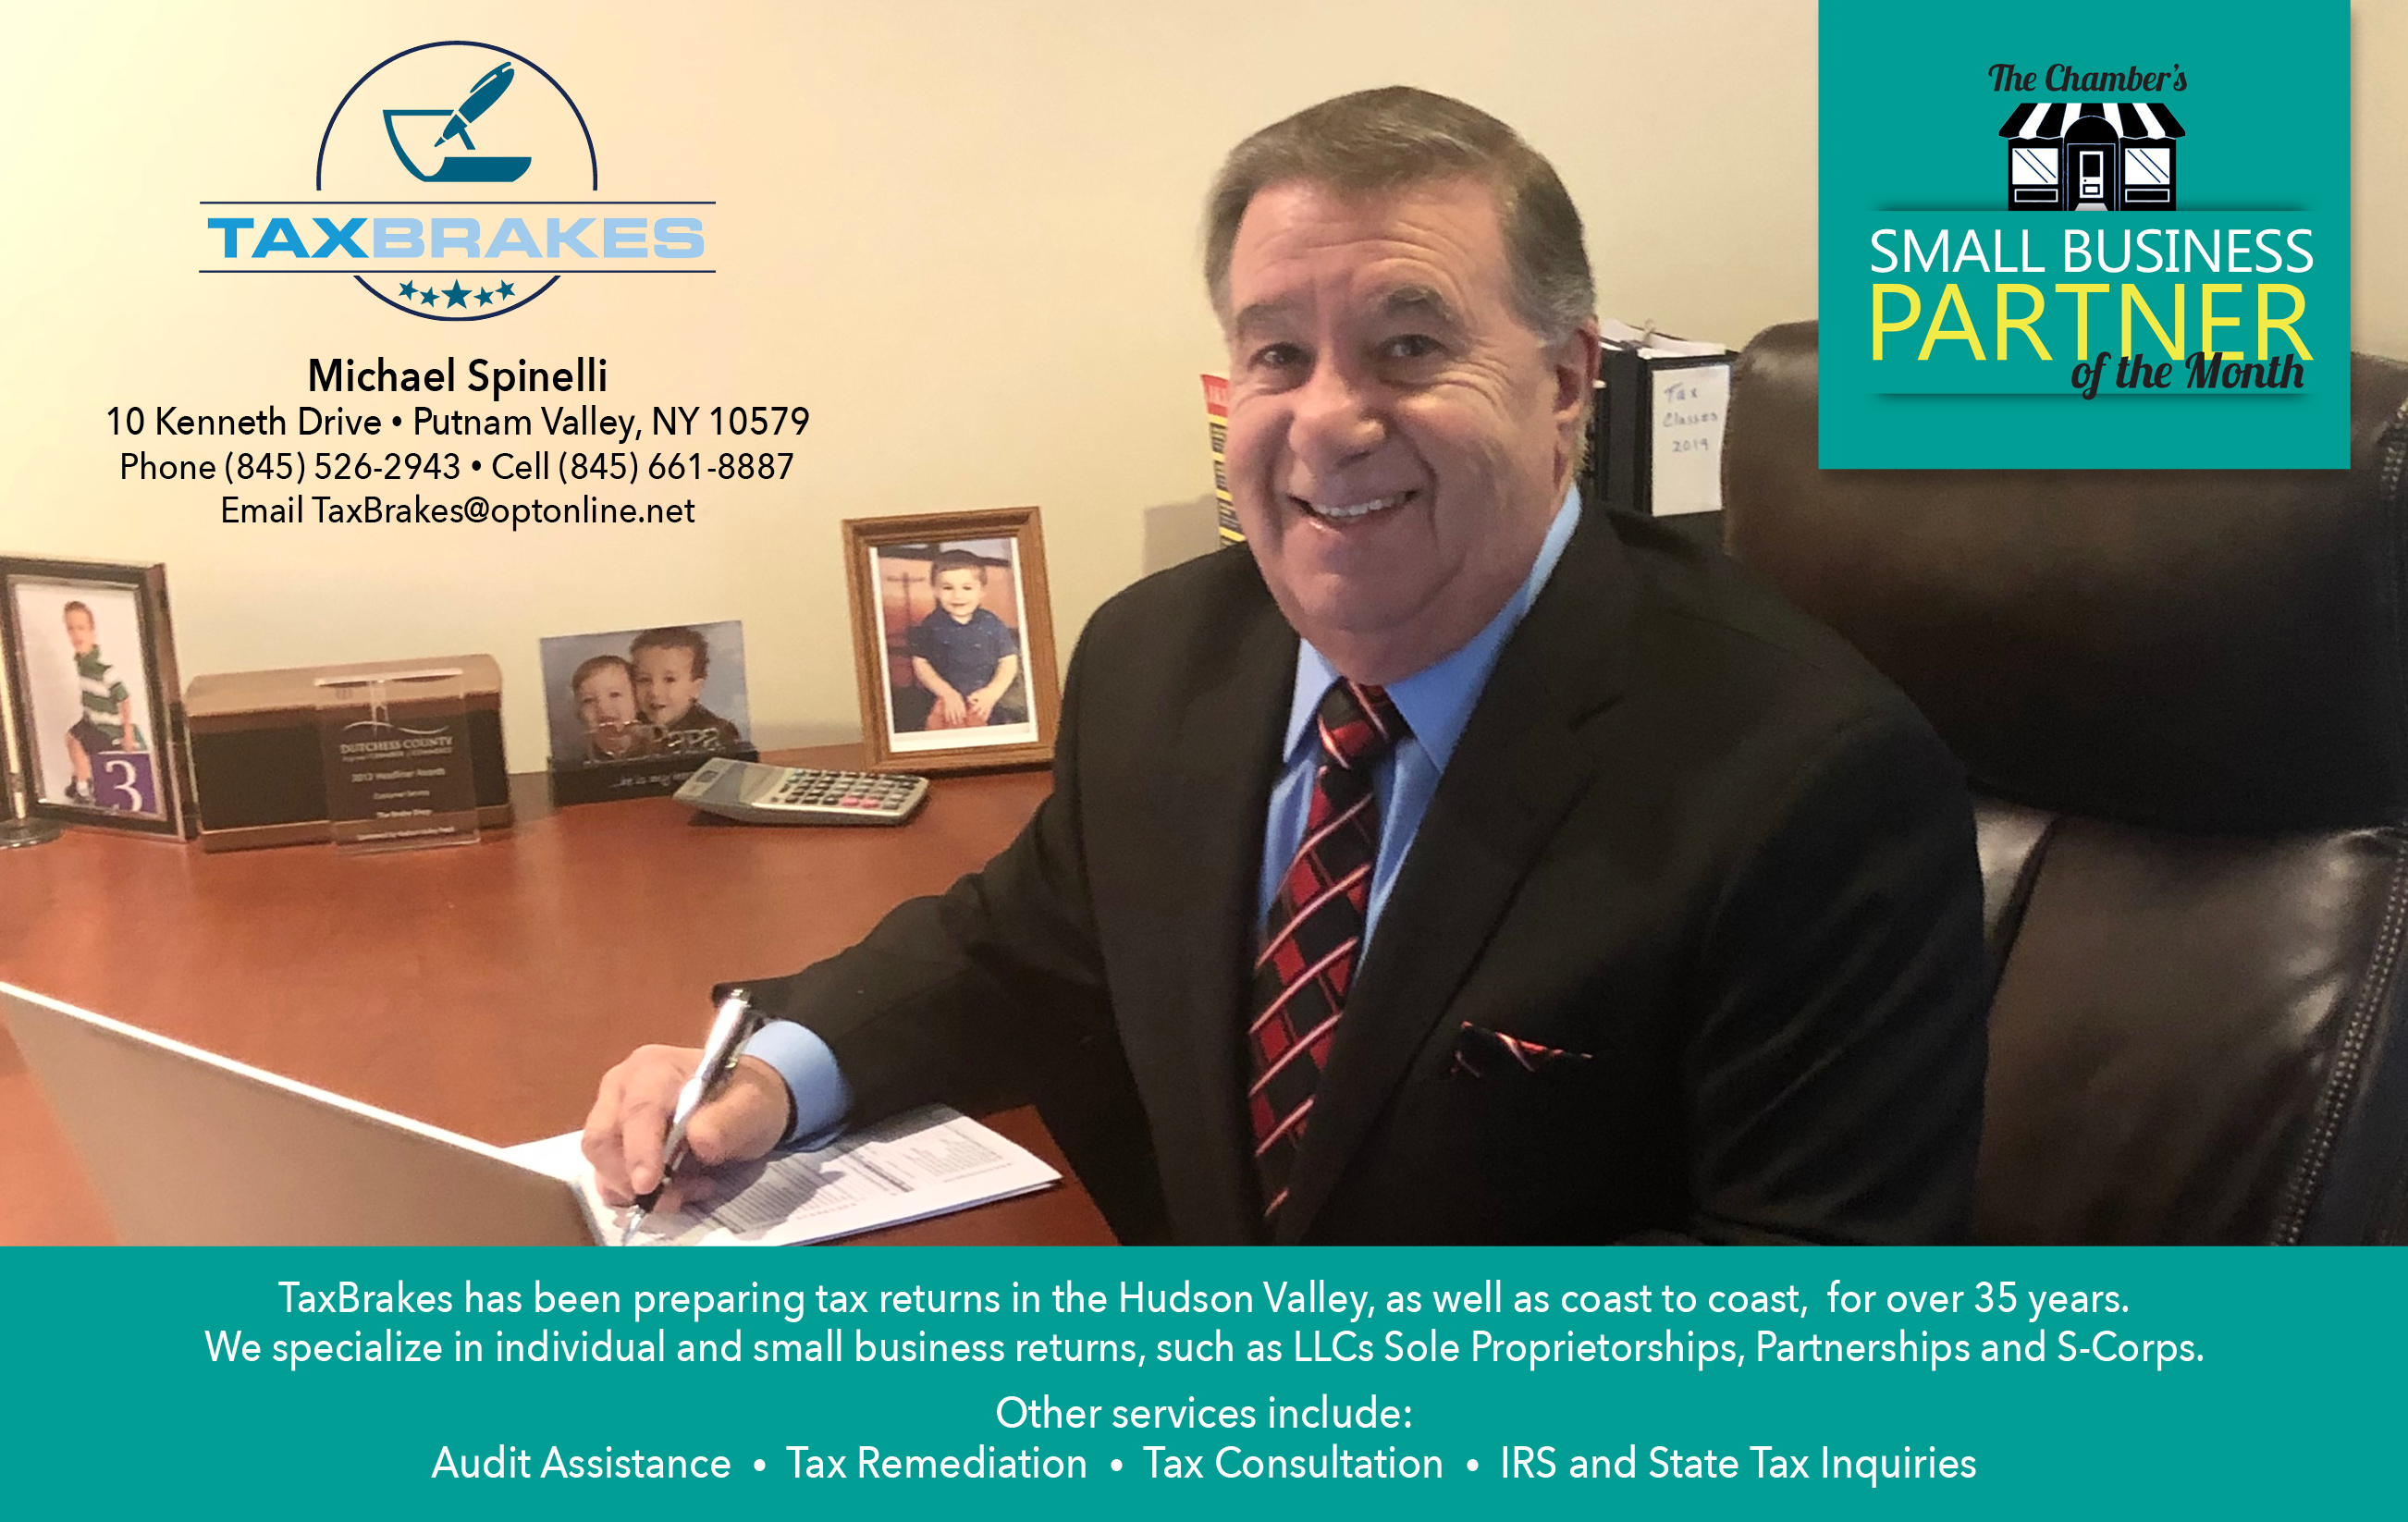 This is an advertisement for the Chamber's small business Partner of the month, a program that small businesses can take advantage of if they are members. Click here to visit Tax Brakes' website.